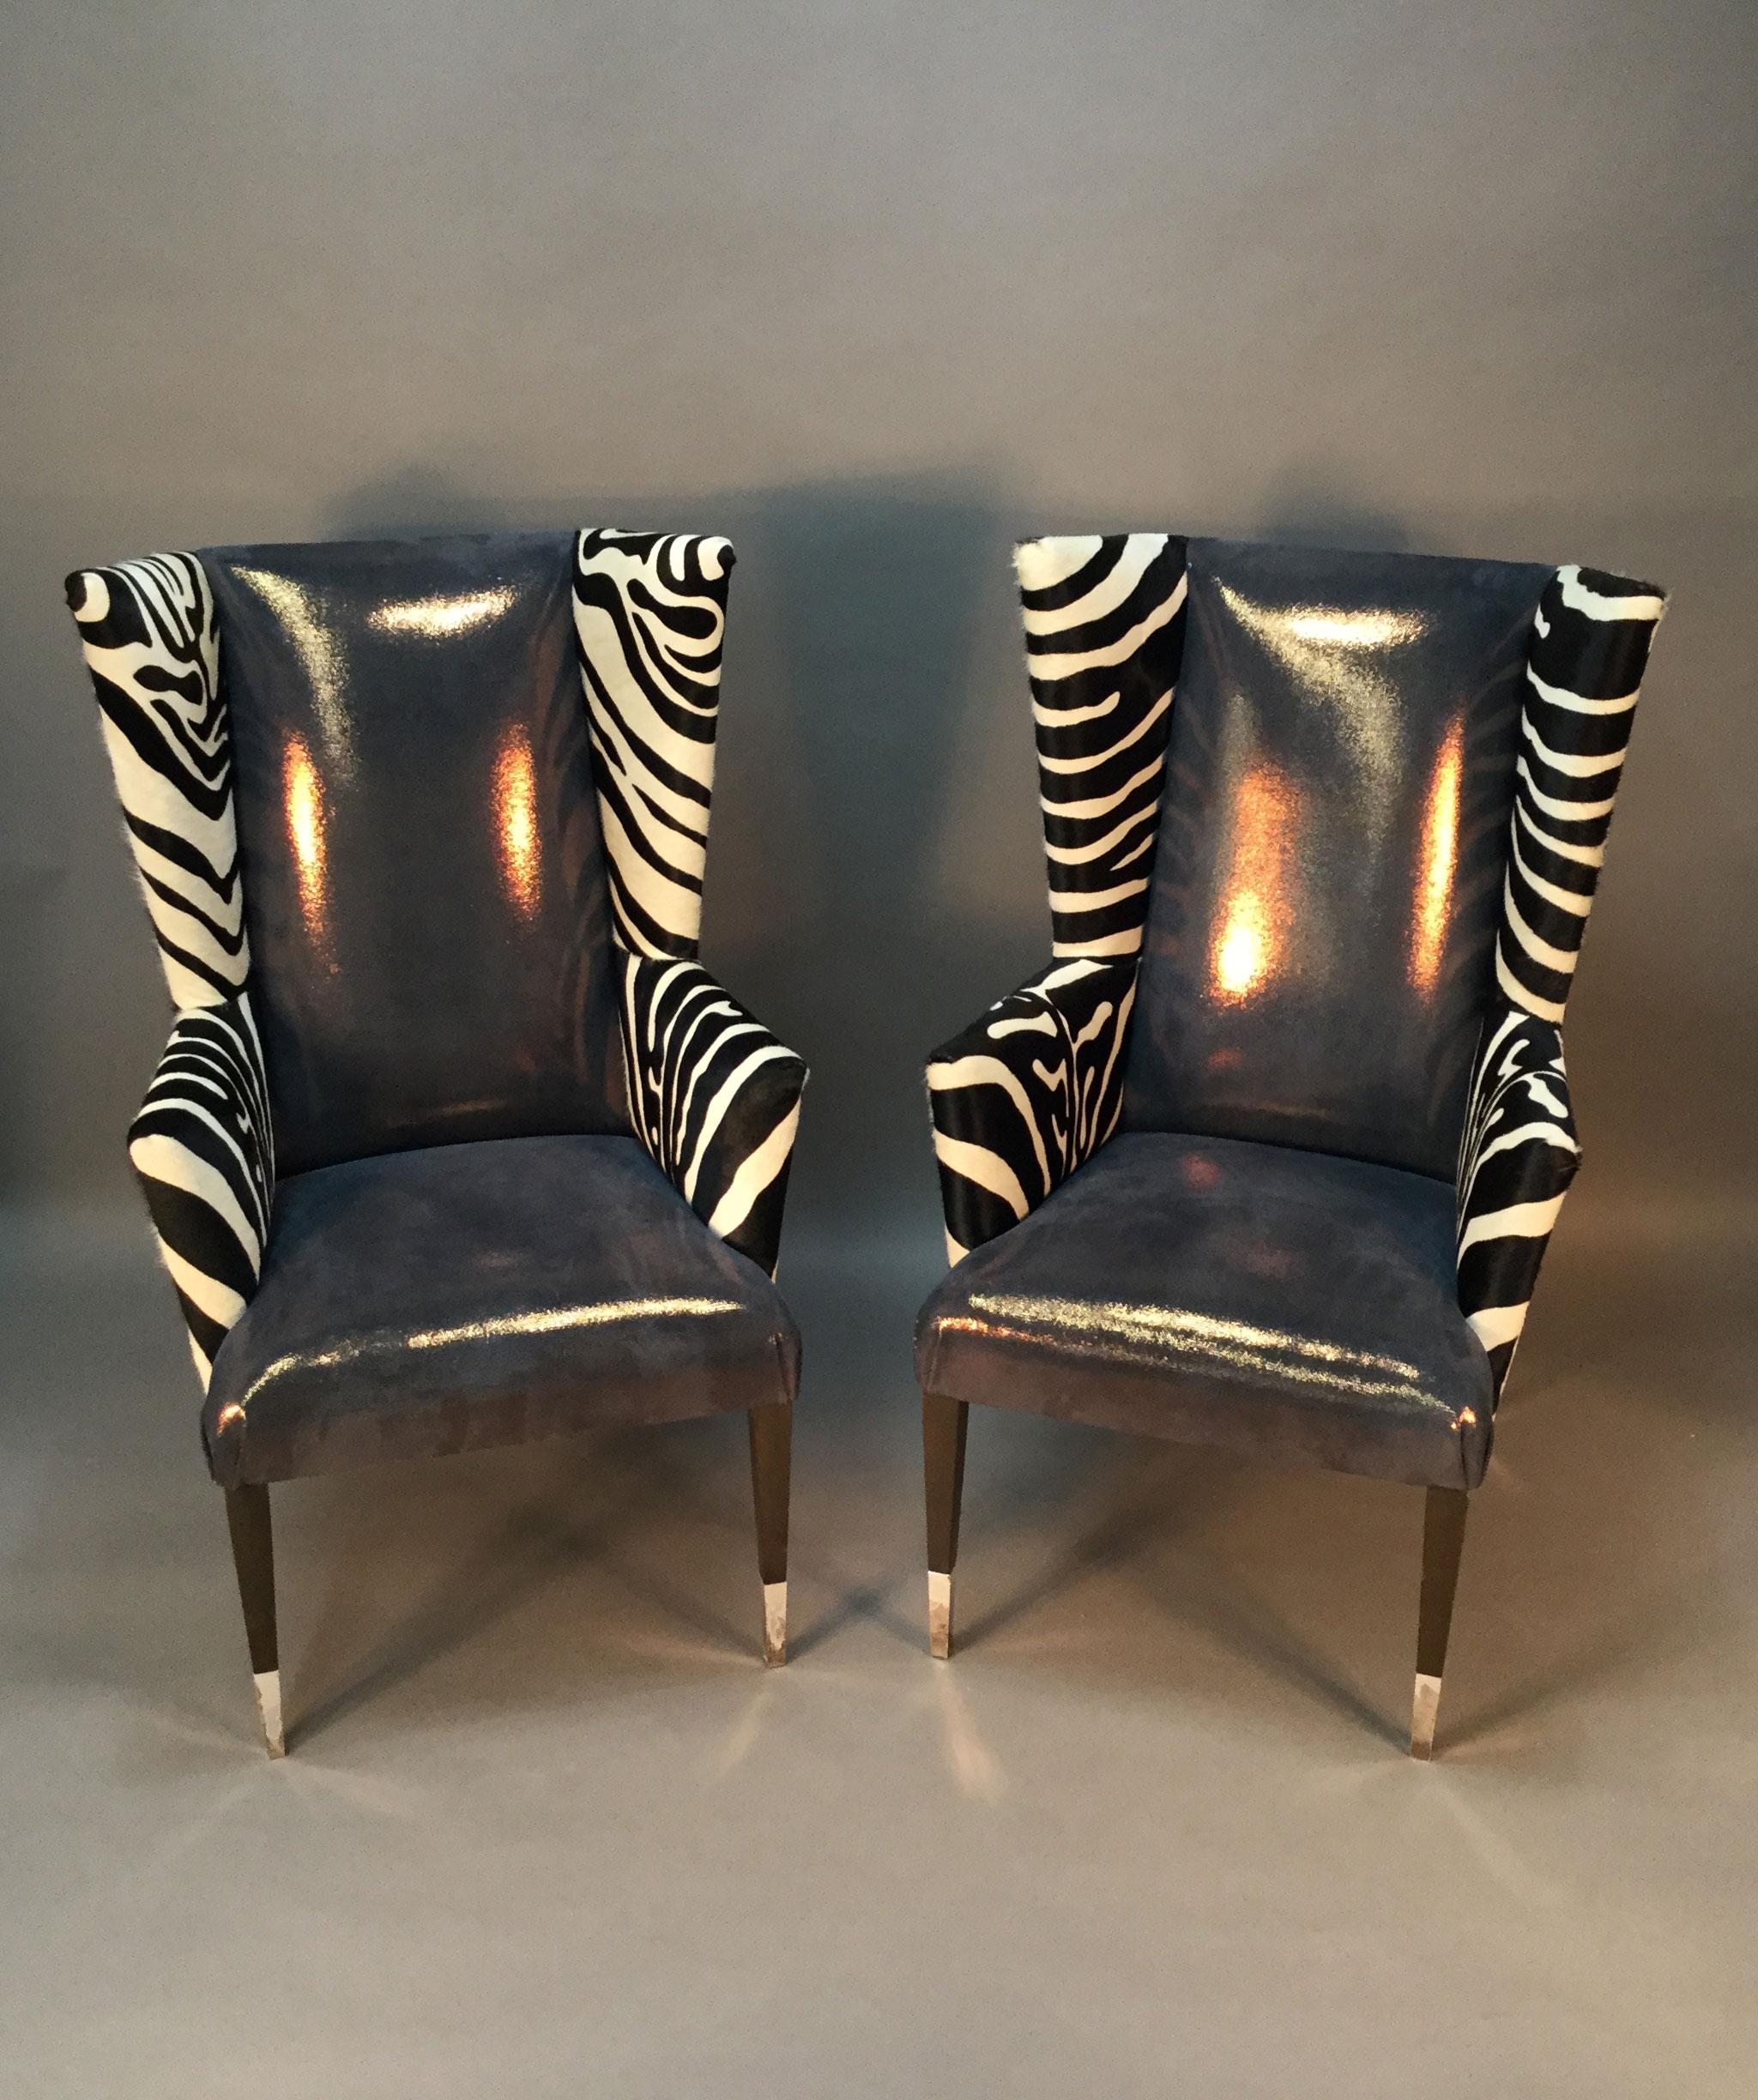 Superieur Modern Wingback Chairs With Zebra Print   Pair   Image 4 Of 9